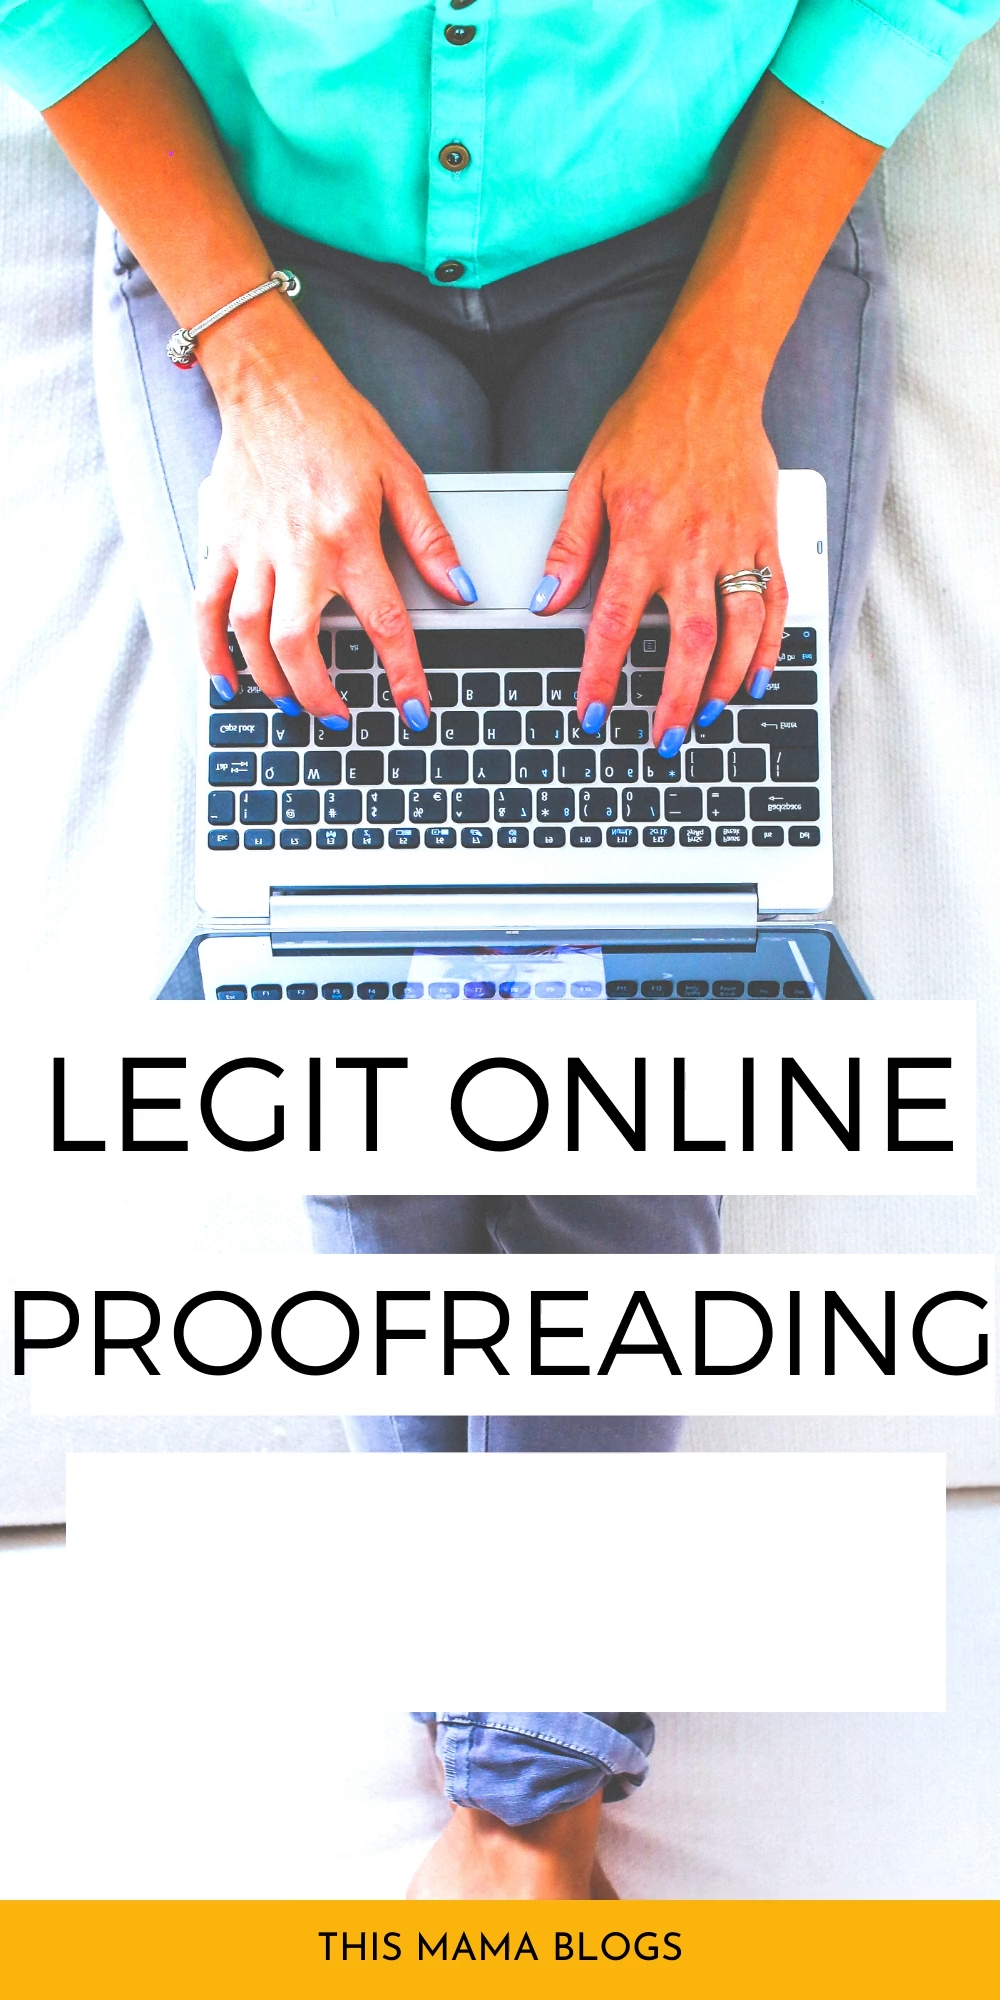 e6e2a04673b3b8054d54cb52c5659de5 - 20 Online Proofreading Jobs for Beginners - work-from-home